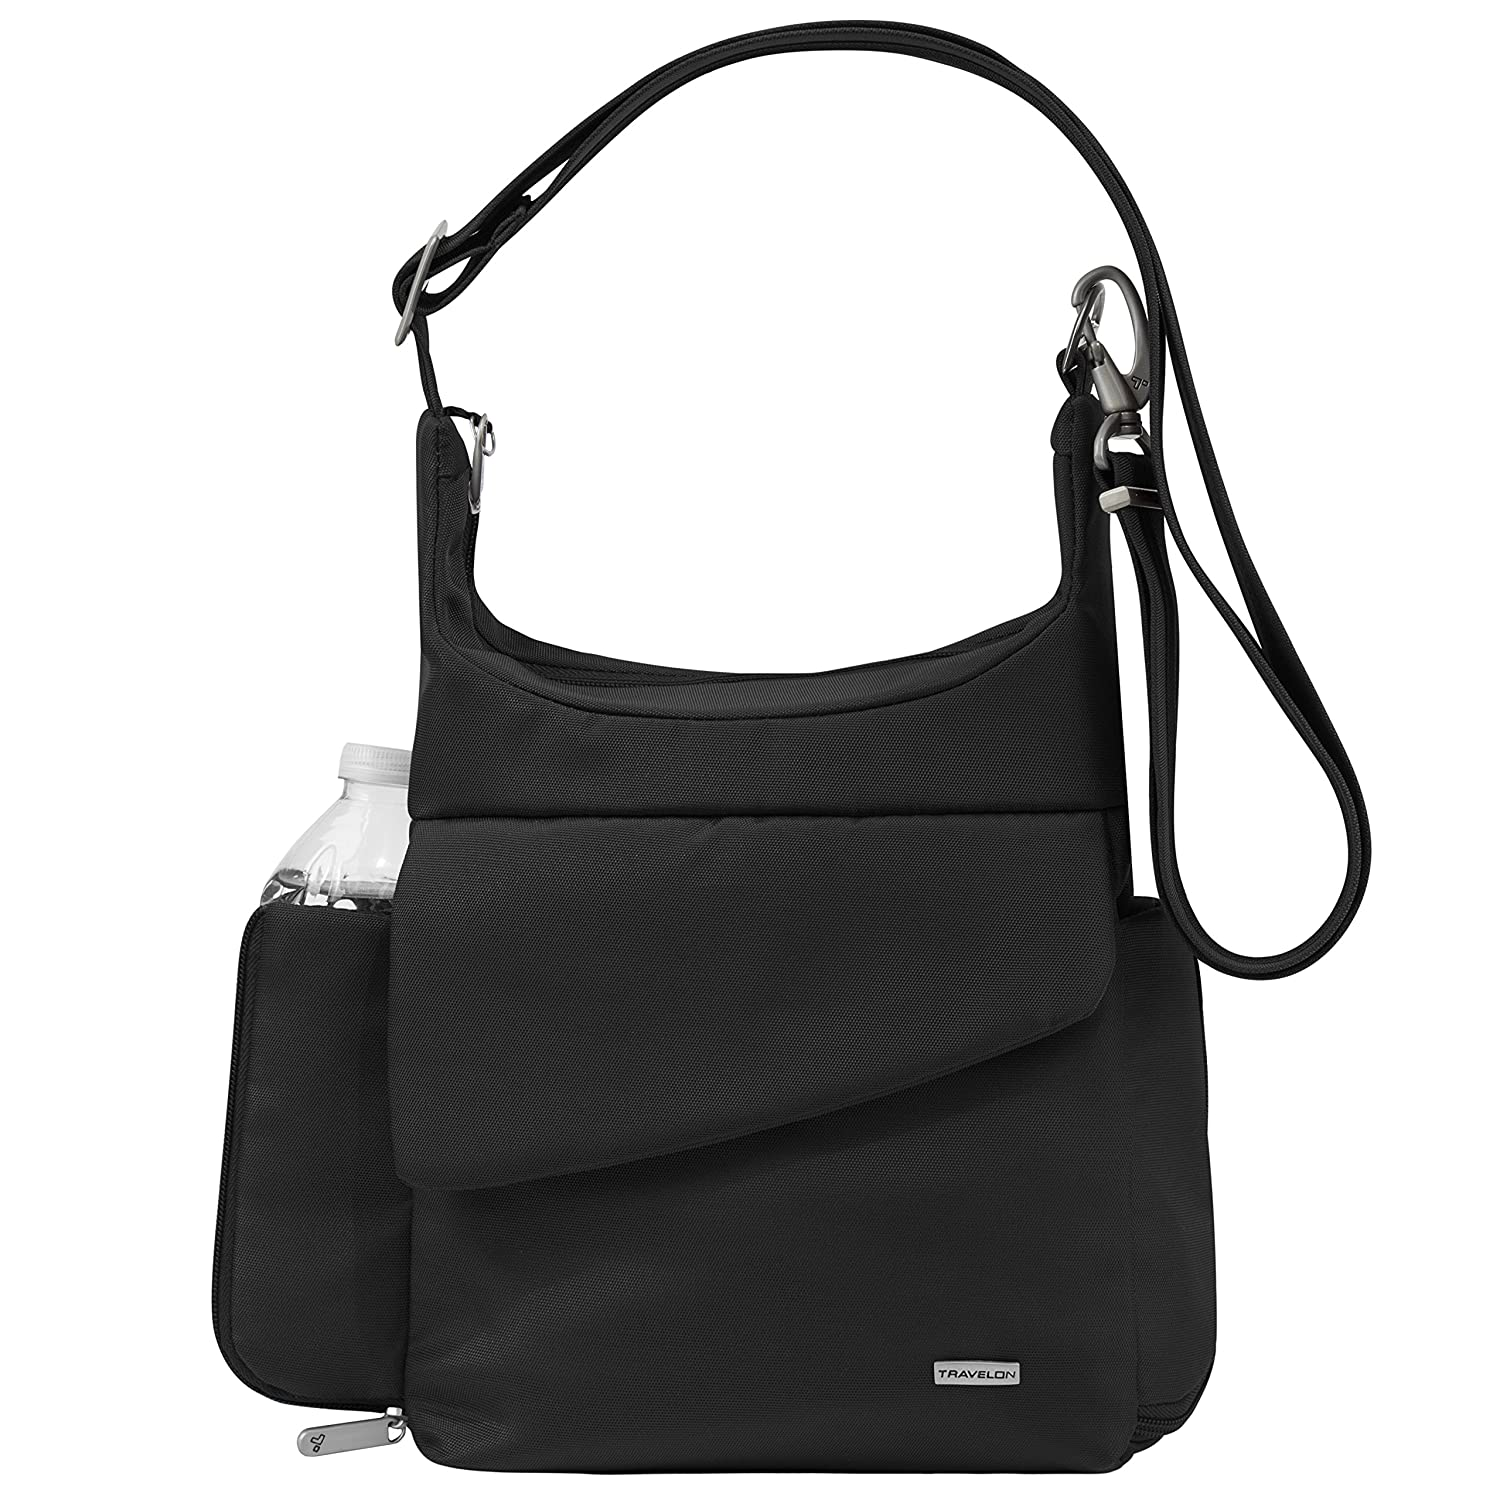 Travelon Anti-Theft Classic Messenger Bag, Black, One Size